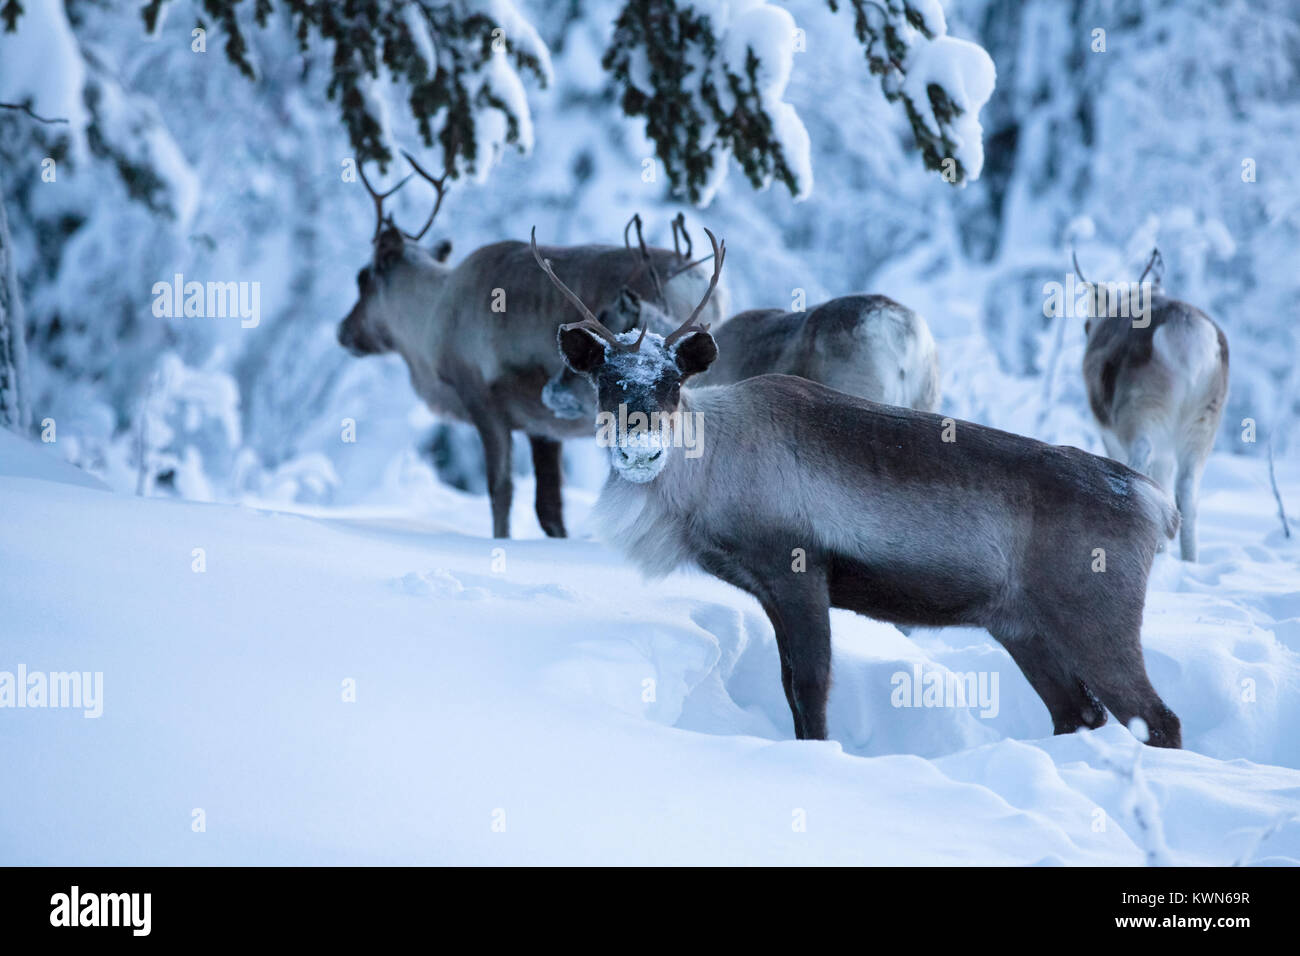 Reindeers digging for food in the deep snow. Stock Photo